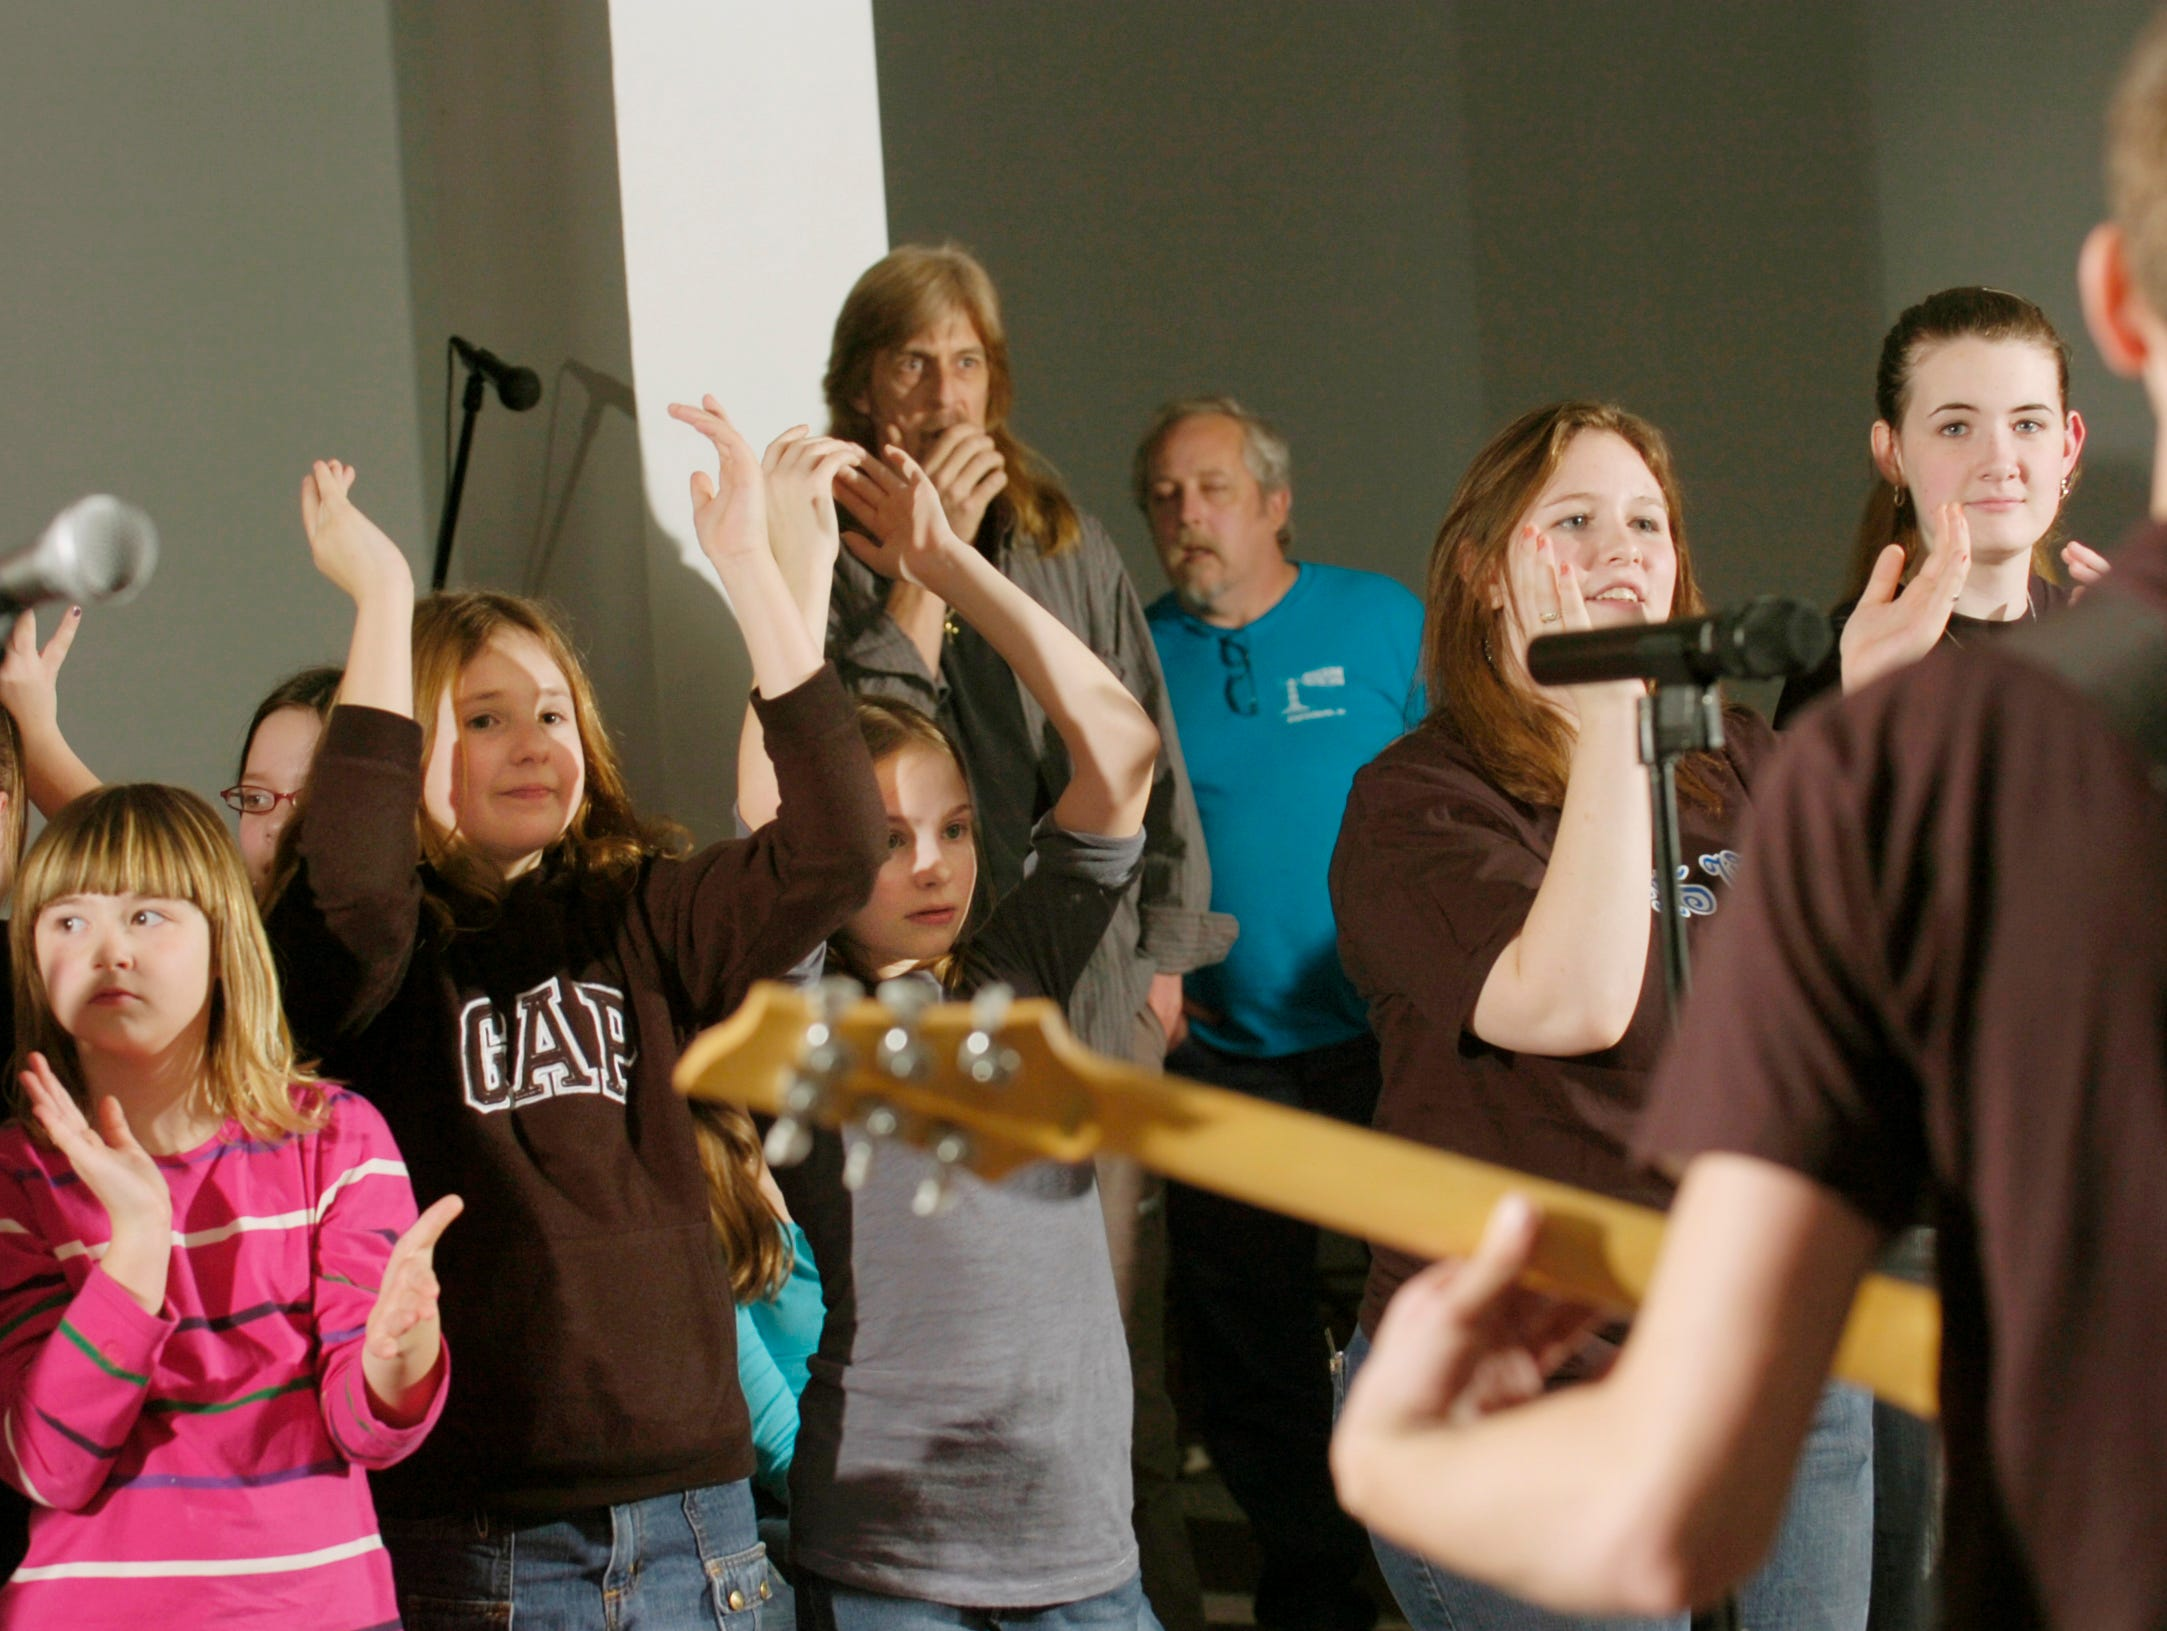 Fans rock out to Eden's Way during a New Year's eve show at Ballcamp Baptist Church.